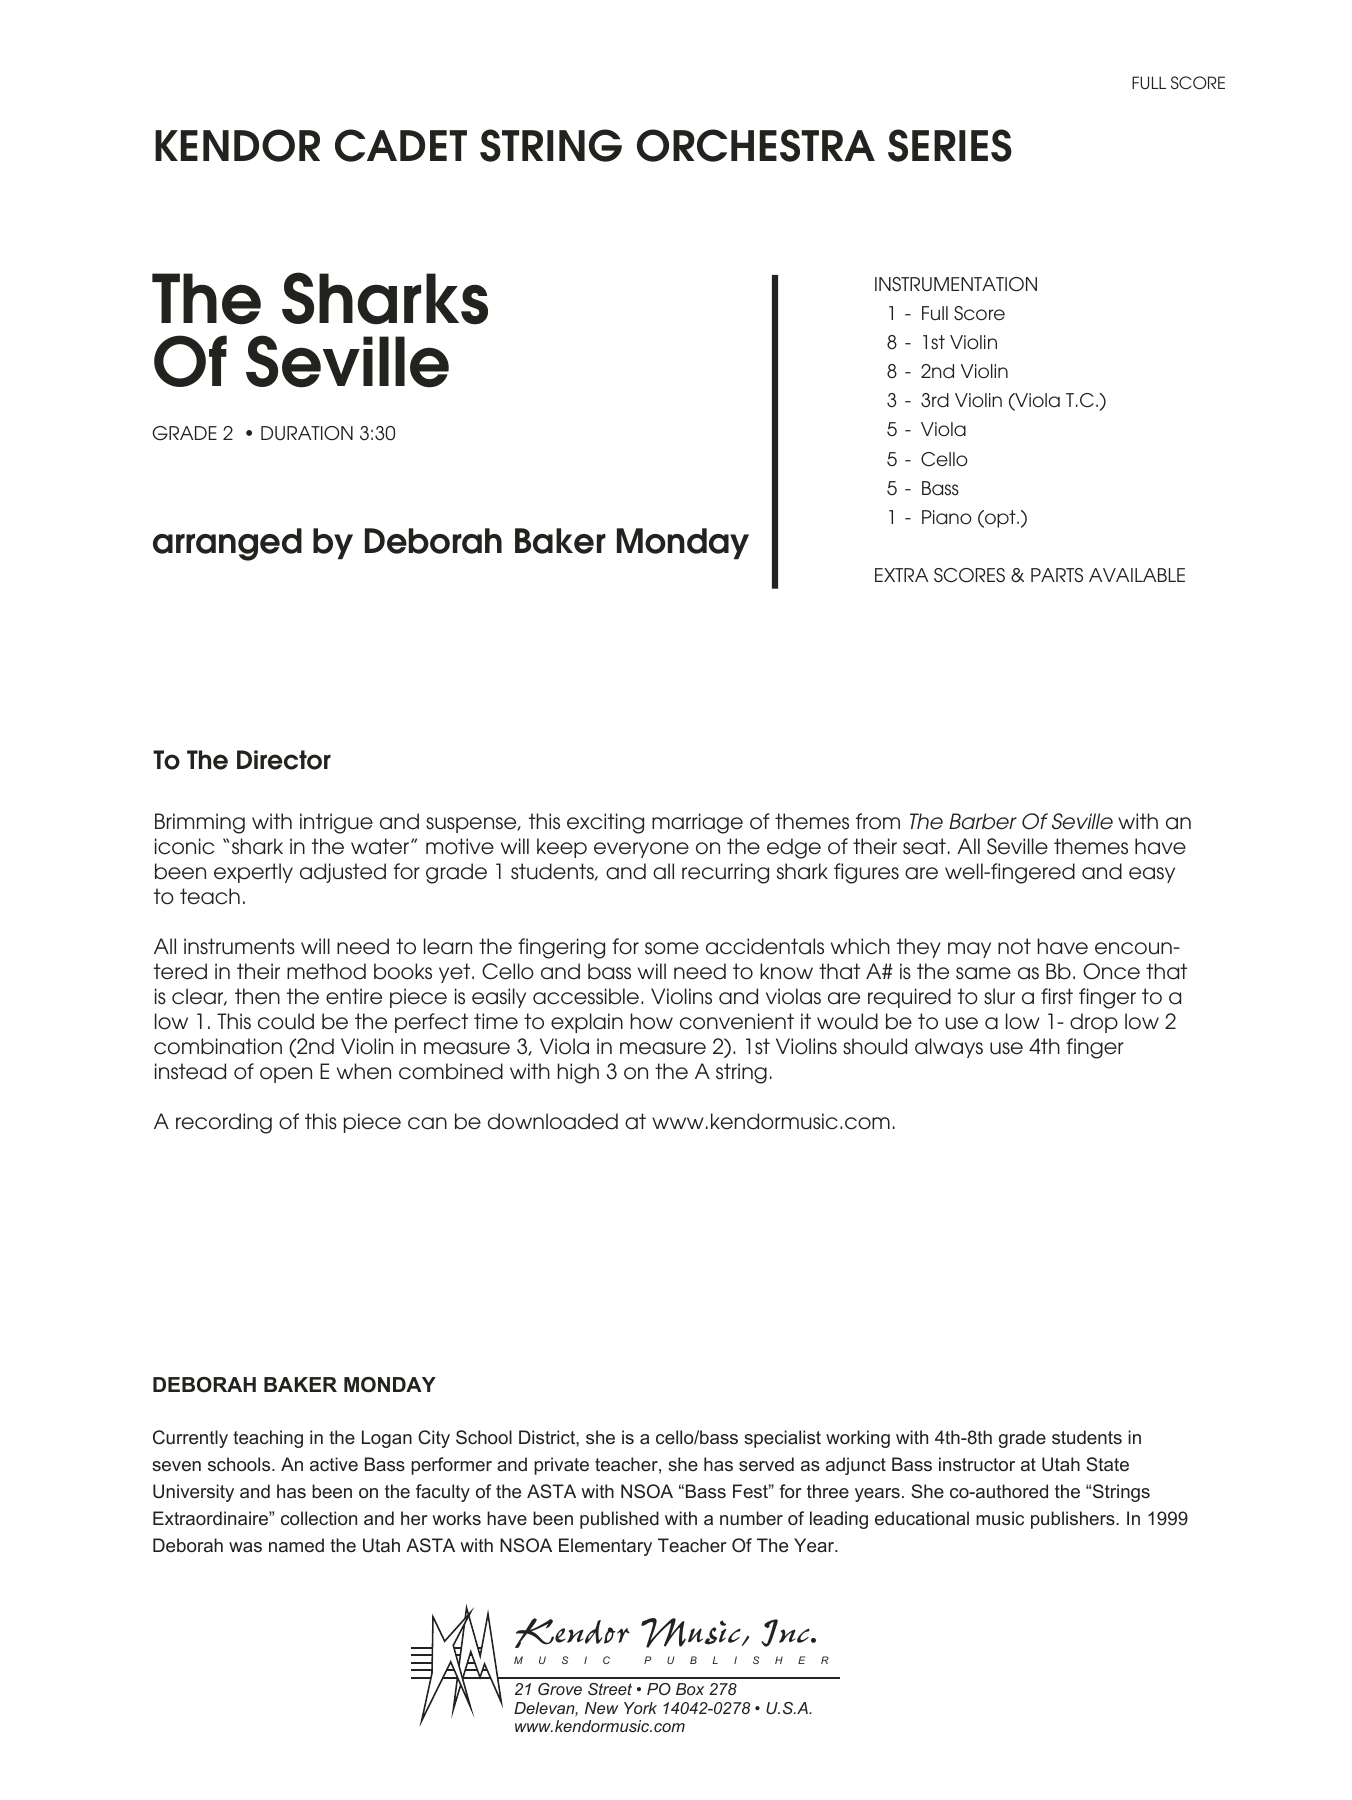 Deborah Baker Monday The Sharks Of Seville - Full Score sheet music notes and chords. Download Printable PDF.